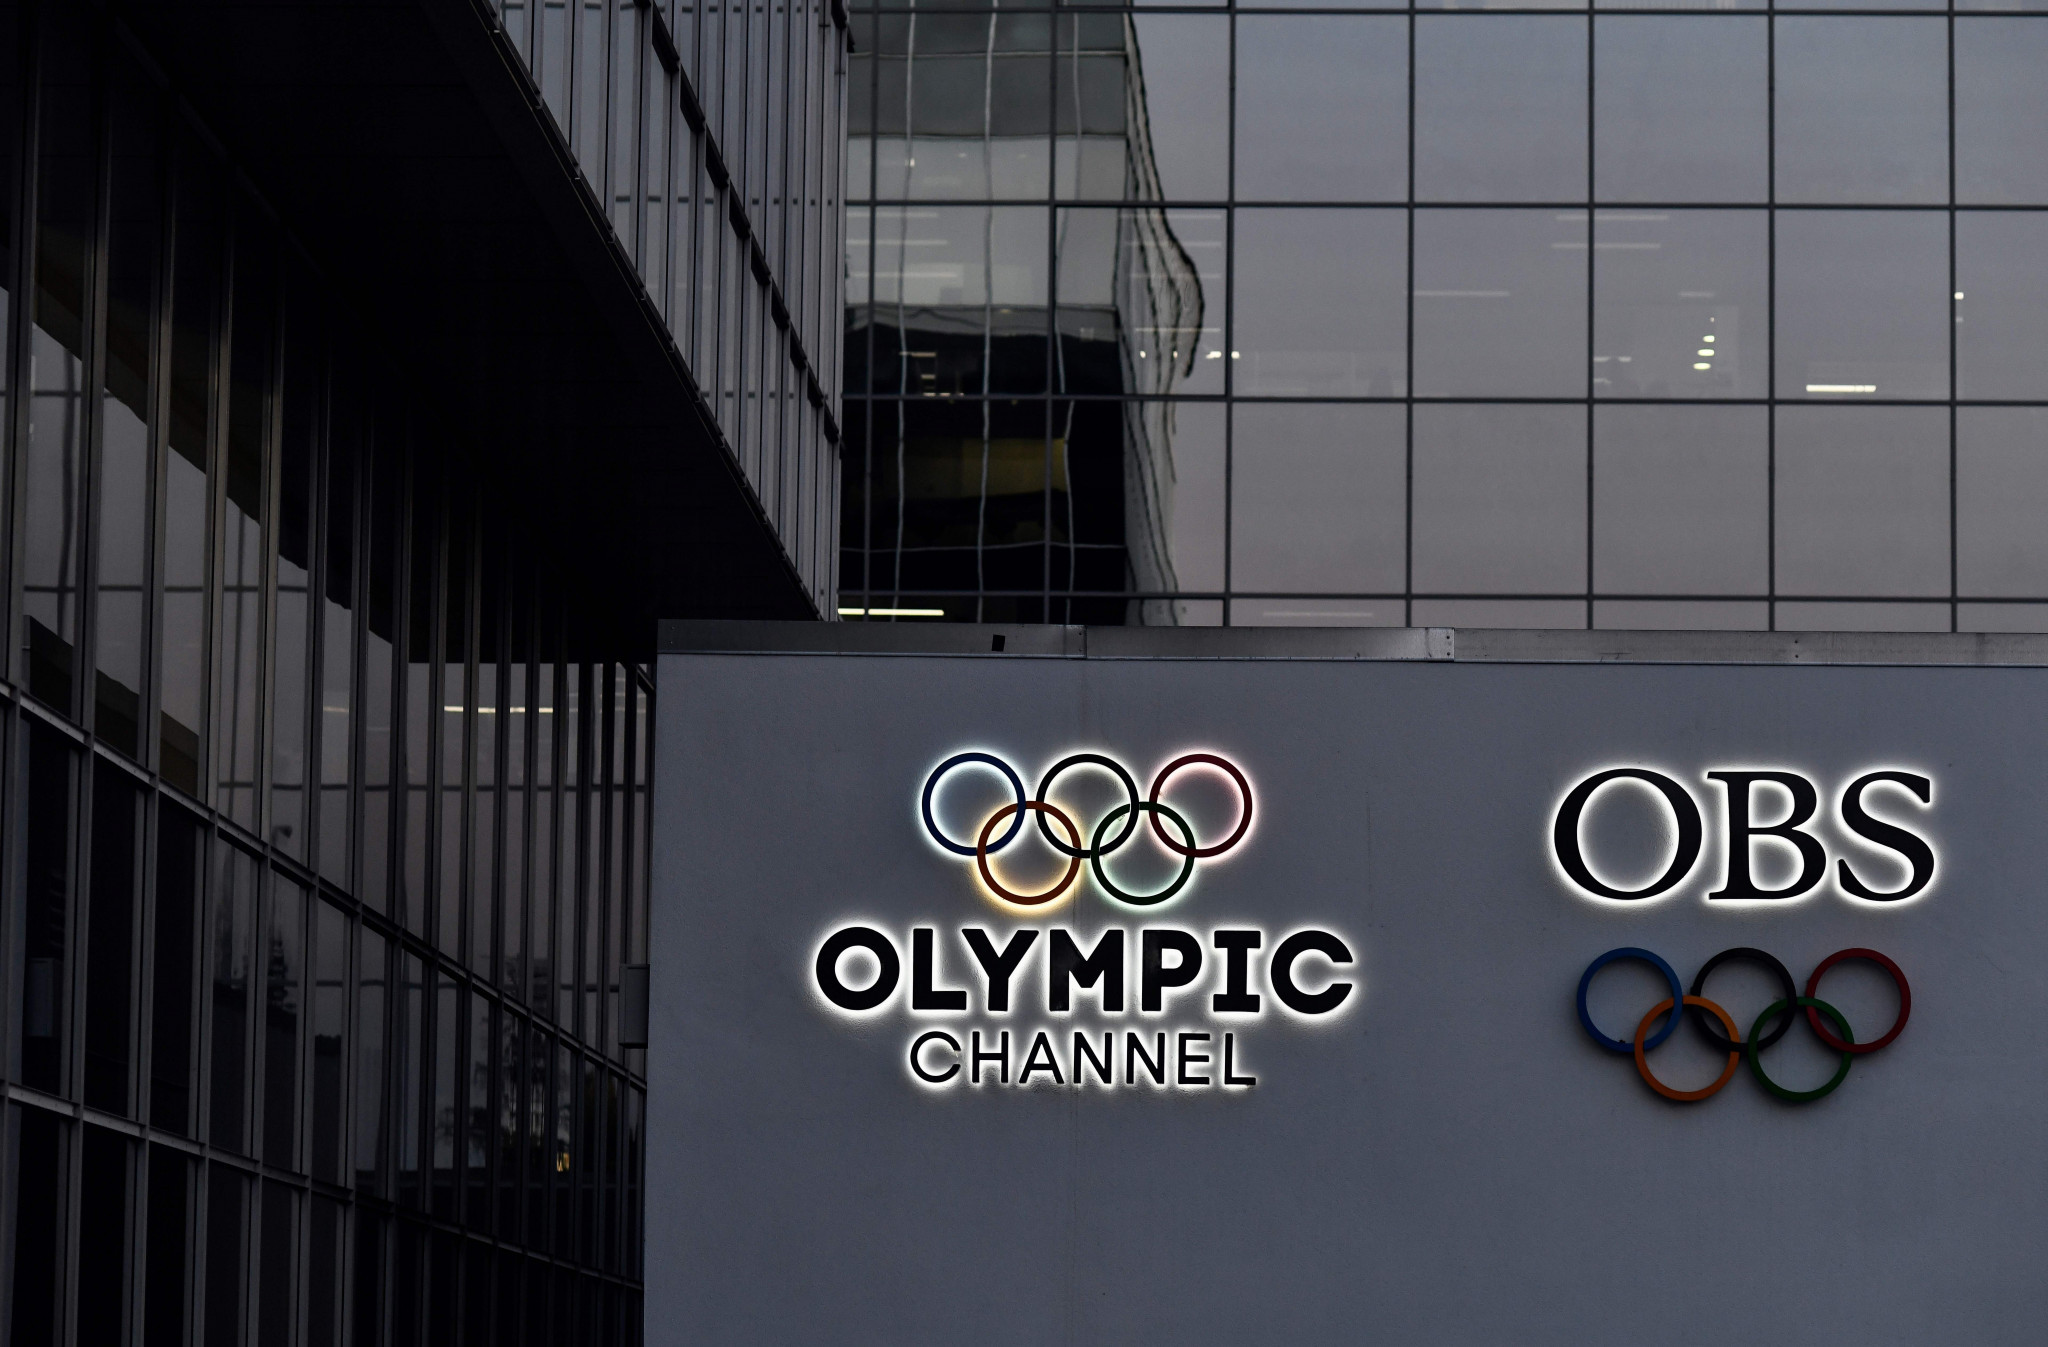 The Olympic Channel has axed its communications and public relations team as part of a restructuring ©Getty Images